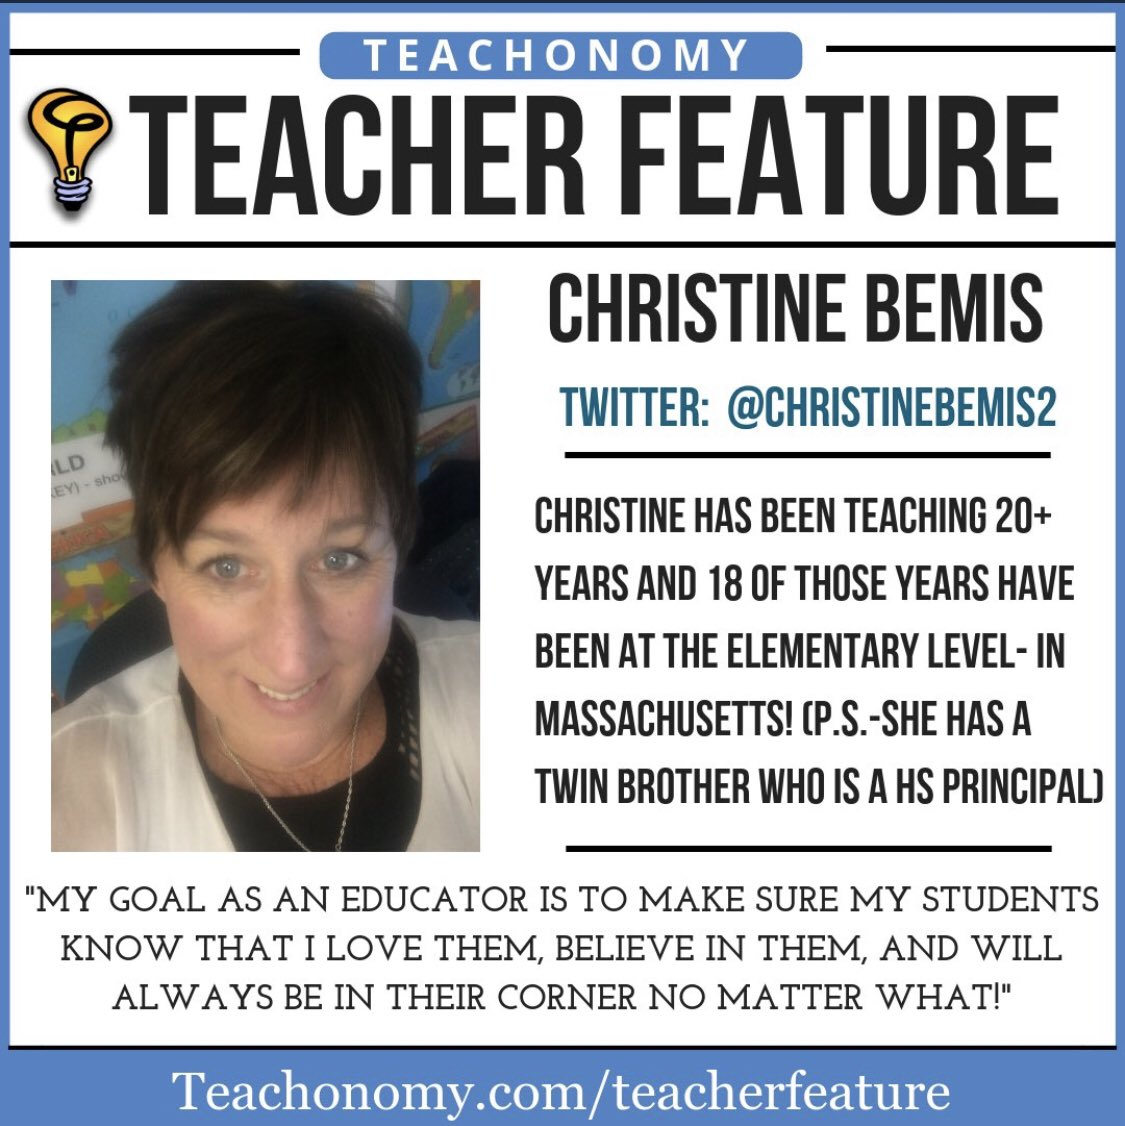 """I've been itching to send this tweet out since I got word that @ChristineBemis2 was the """"teacher feature"""" in @cpoole27  http:// Teachonomy.com/Teacherfeature  &nbsp;   #bfc530 she will be moderating #wcwarriors4kids this Sunday 2/24 at 8:30!  The topic is  Risk Taking!  Don't miss it!<br>http://pic.twitter.com/7UvC27cDUx"""